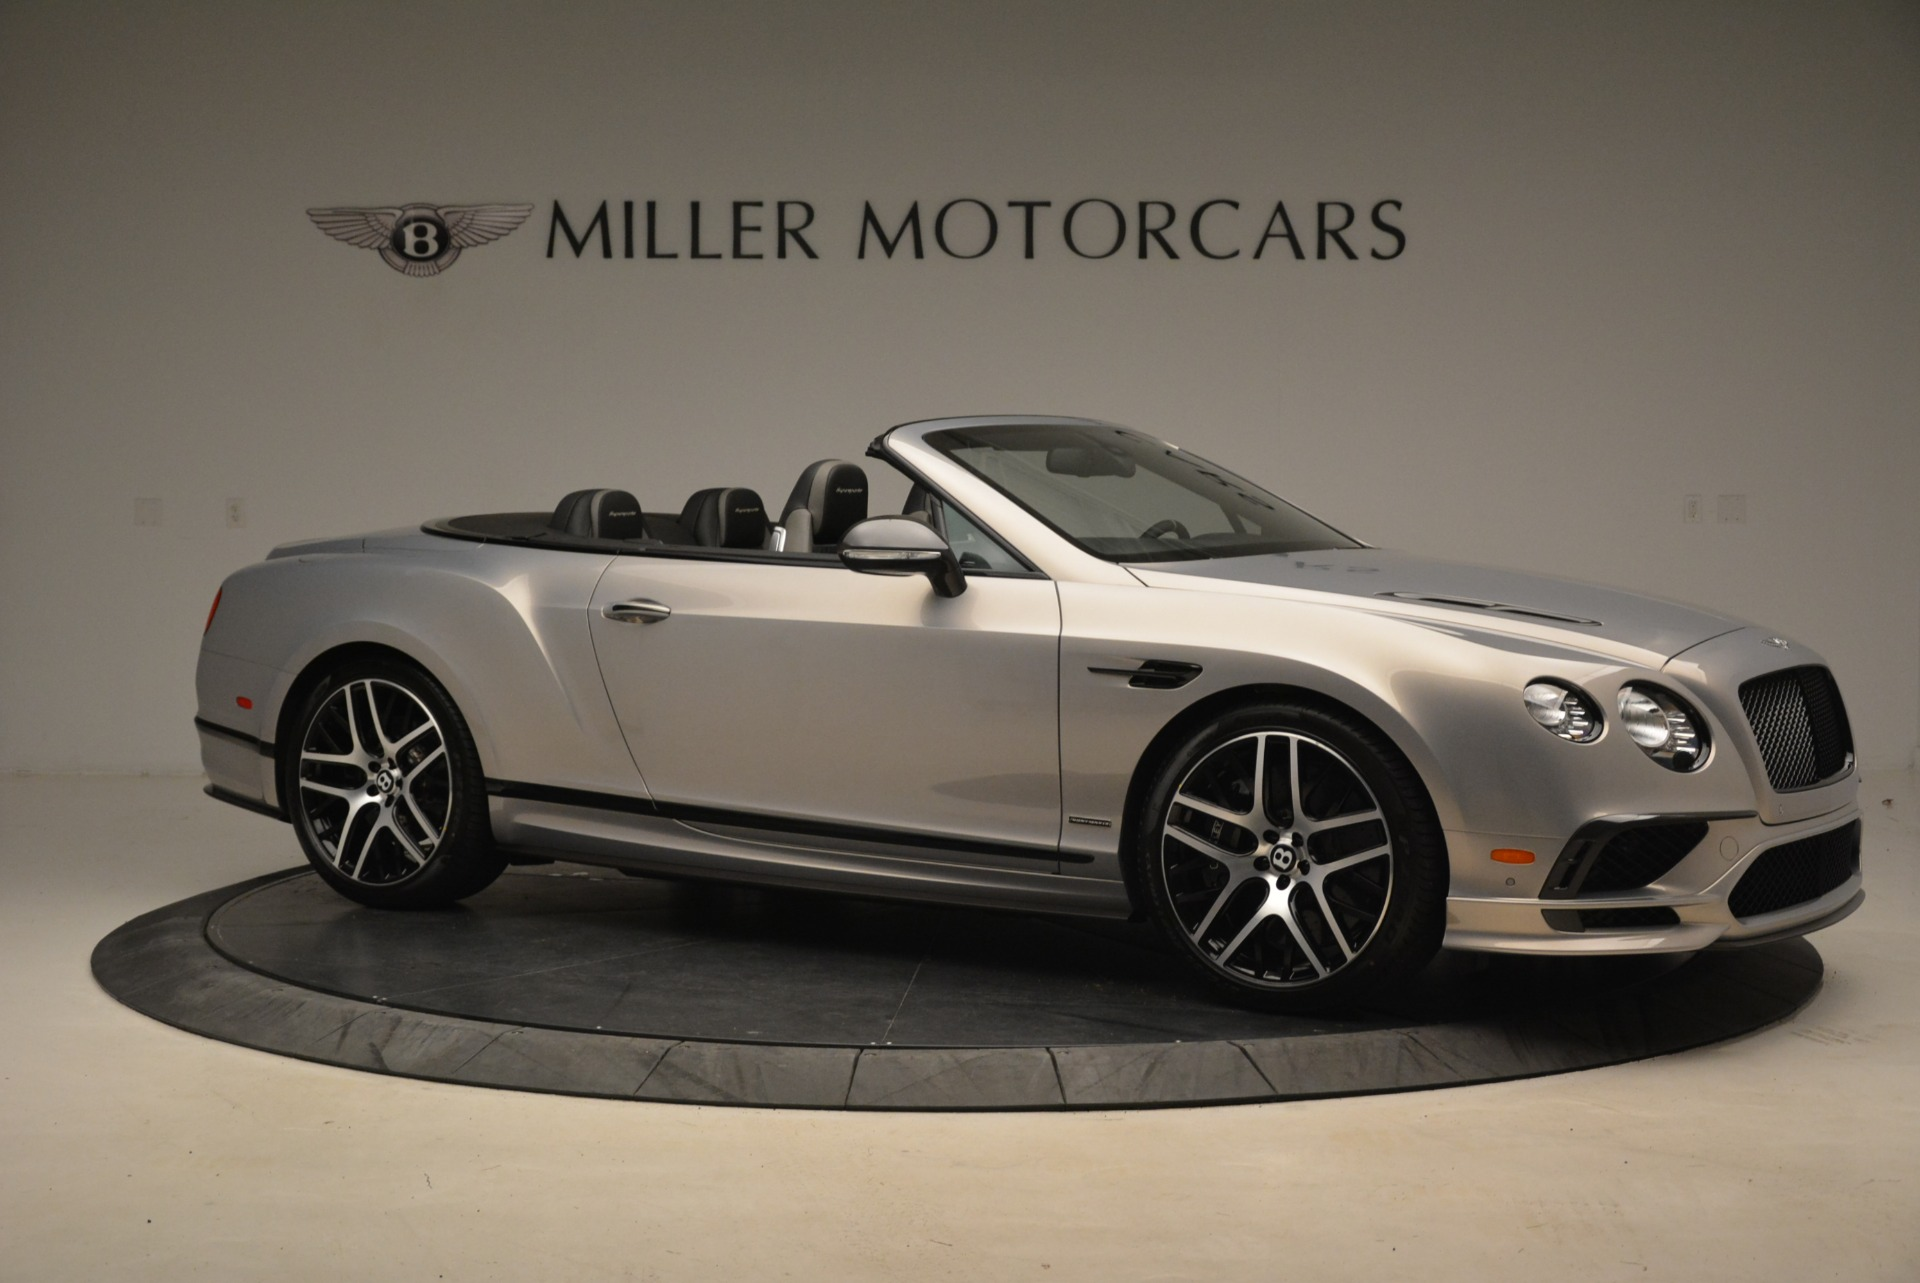 Used 2018 Bentley Continental GT Supersports Convertible For Sale In Westport, CT 2134_p10